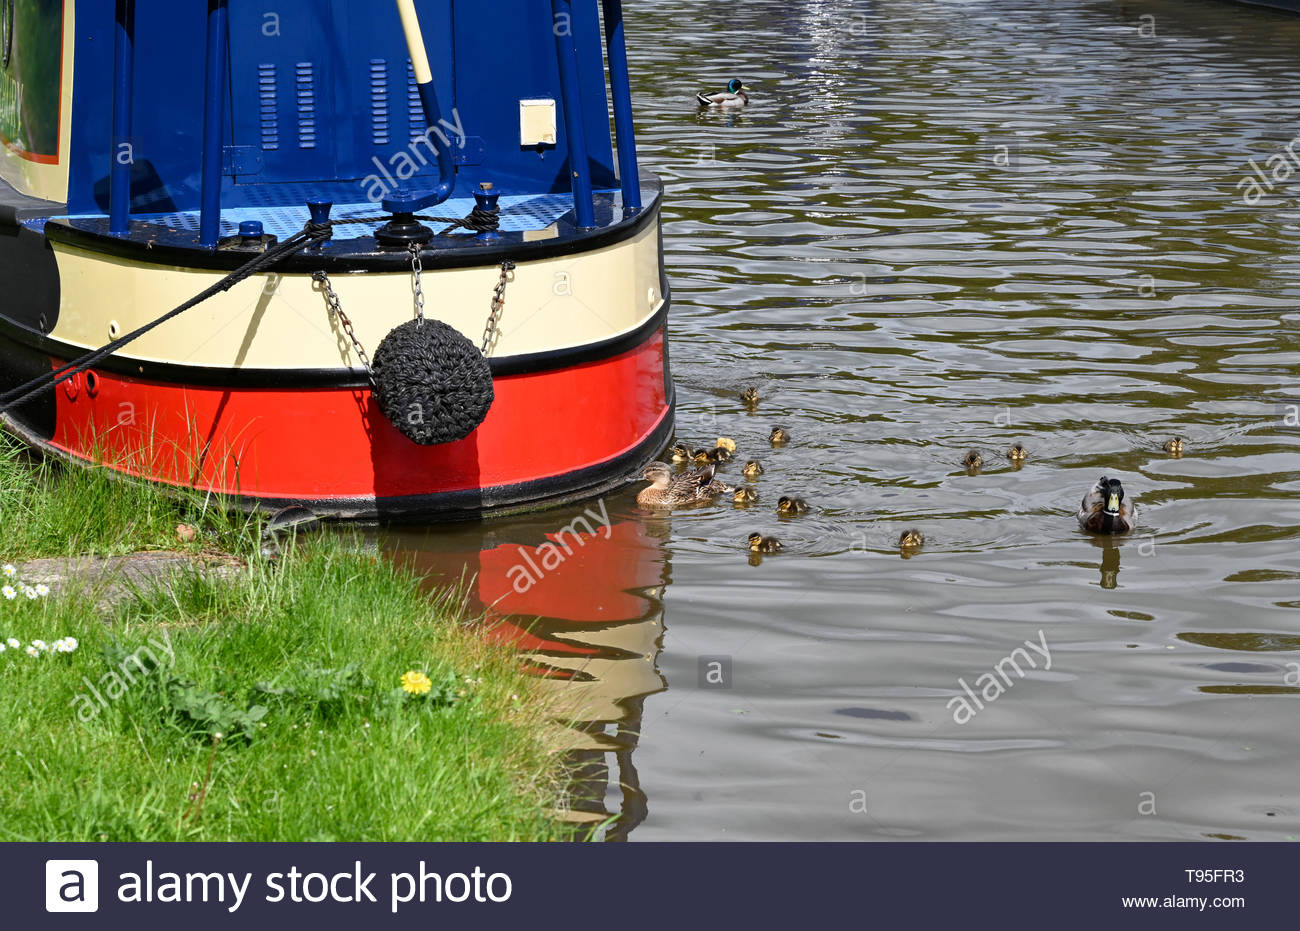 Family of mallard ducks including ducklings swimming in a canal near a narrowboat in the bright sunshine. - Stock Image